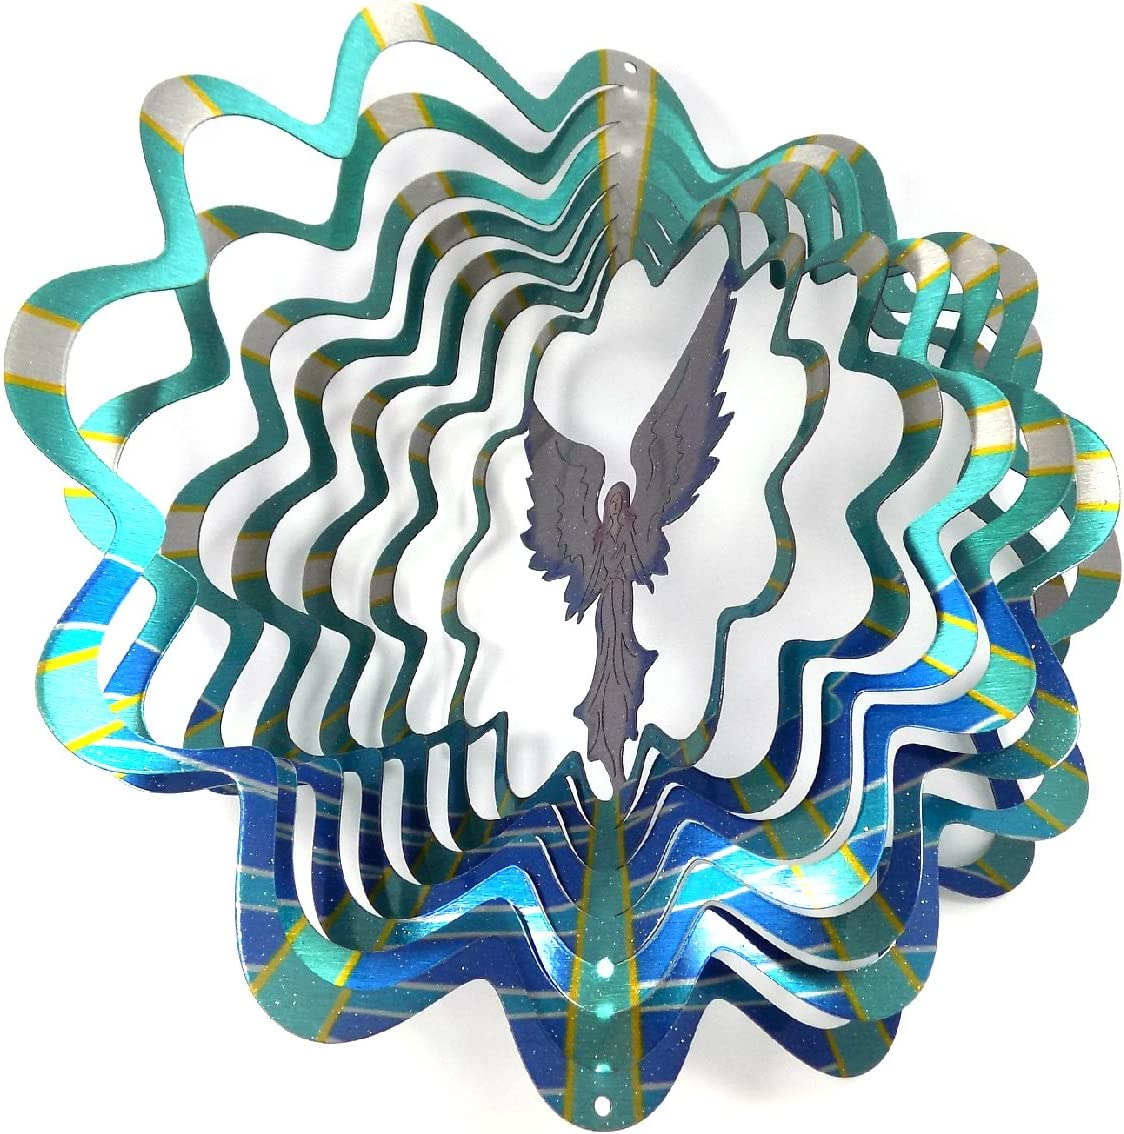 WorldaWhirl Whirligig 3D Wind Spinner Hand Painted Stainless Steel Twister Angel (6.5 Inch, Multi Color)